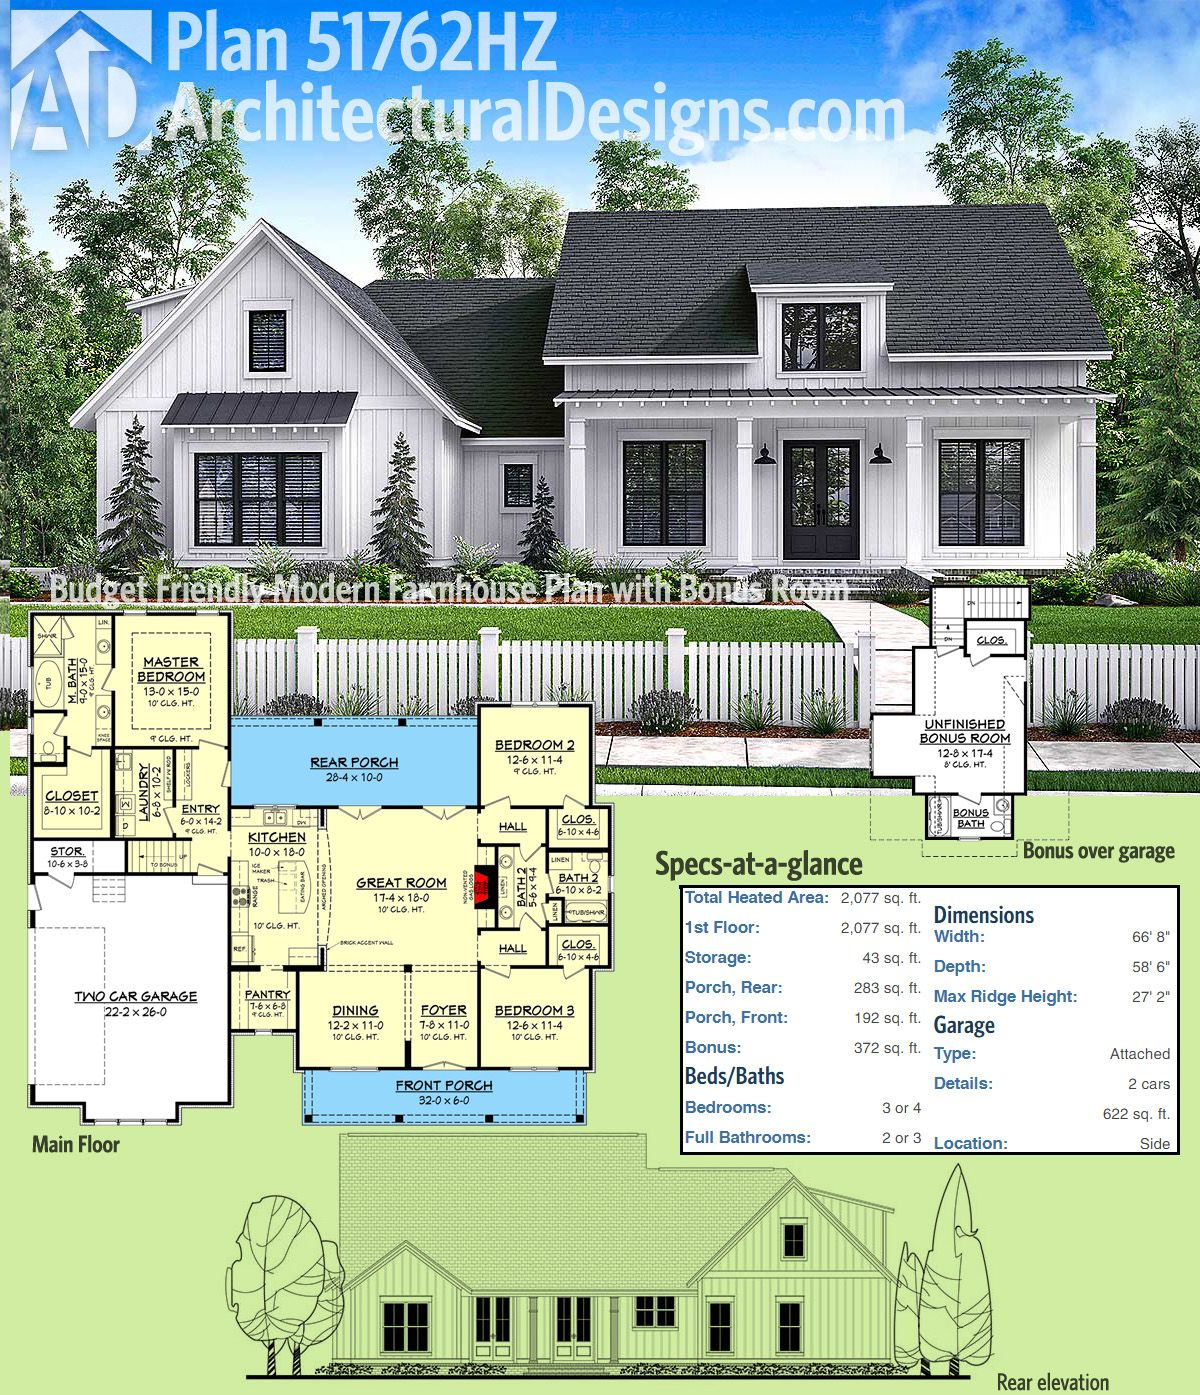 Plan 51762HZ: Budget Friendly Modern Farmhouse Plan with Bonus Room on modern farmhouse dining, modern farmhouse design, traditional farmhouse plans, modern farmhouse-style, open-concept farmhouse plans, modern farmhouse homes, modern plantation floor plans, modern shed floor plans, large farmhouse plans, farmhouse house plans, small farmhouse plans, modern farmhouse construction, modern industrial floor plans, country farmhouse plans, modern flat floor plans, modern farmhouse details, modern farmhouse lifestyle, simple farmhouse plans, contemporary farmhouse plans, farmhouse design plans,